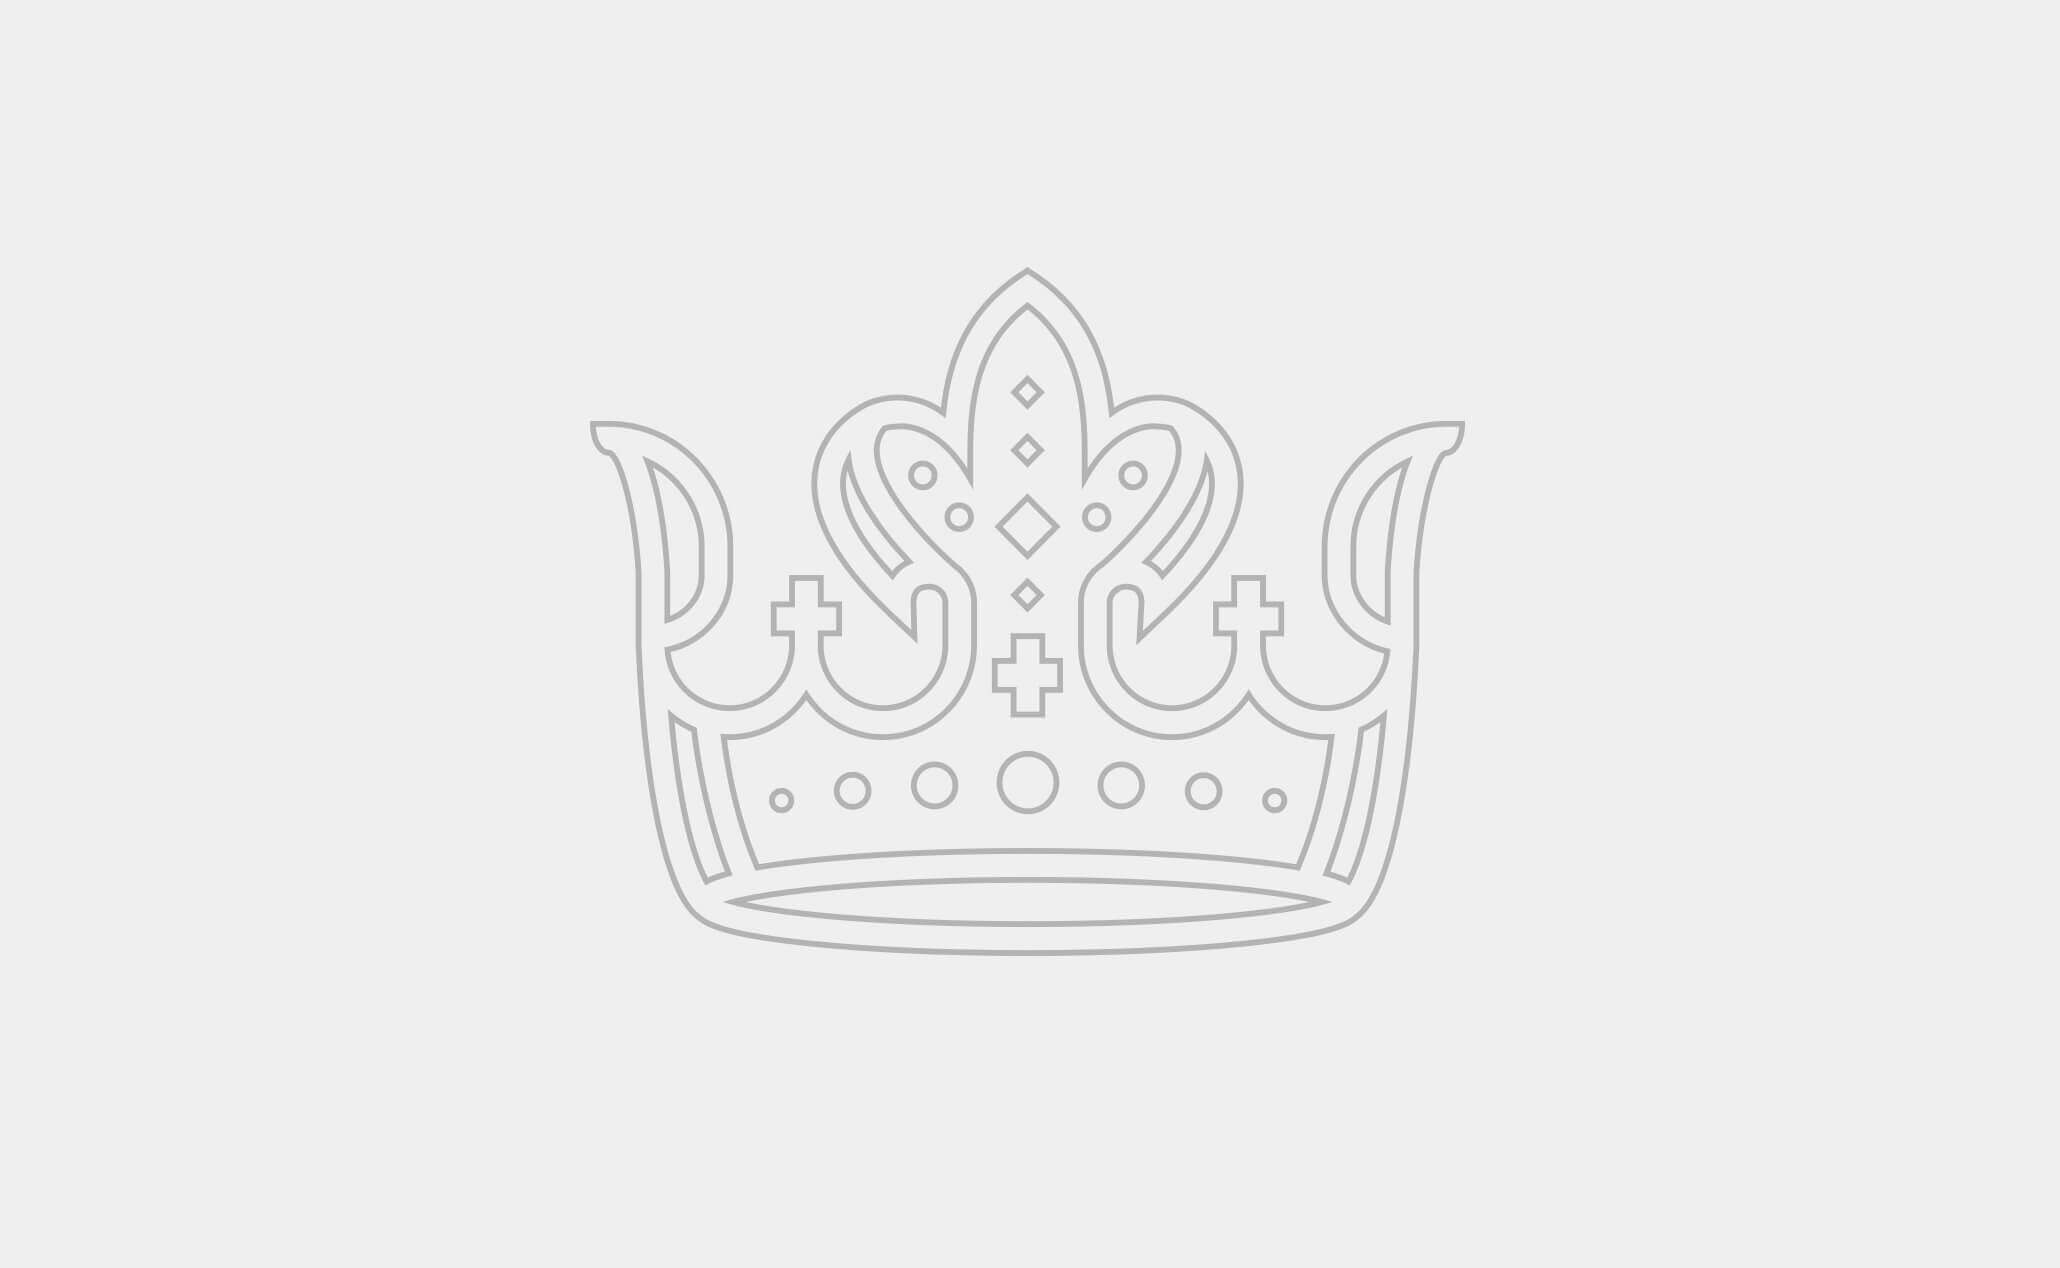 two-days-crown-vector